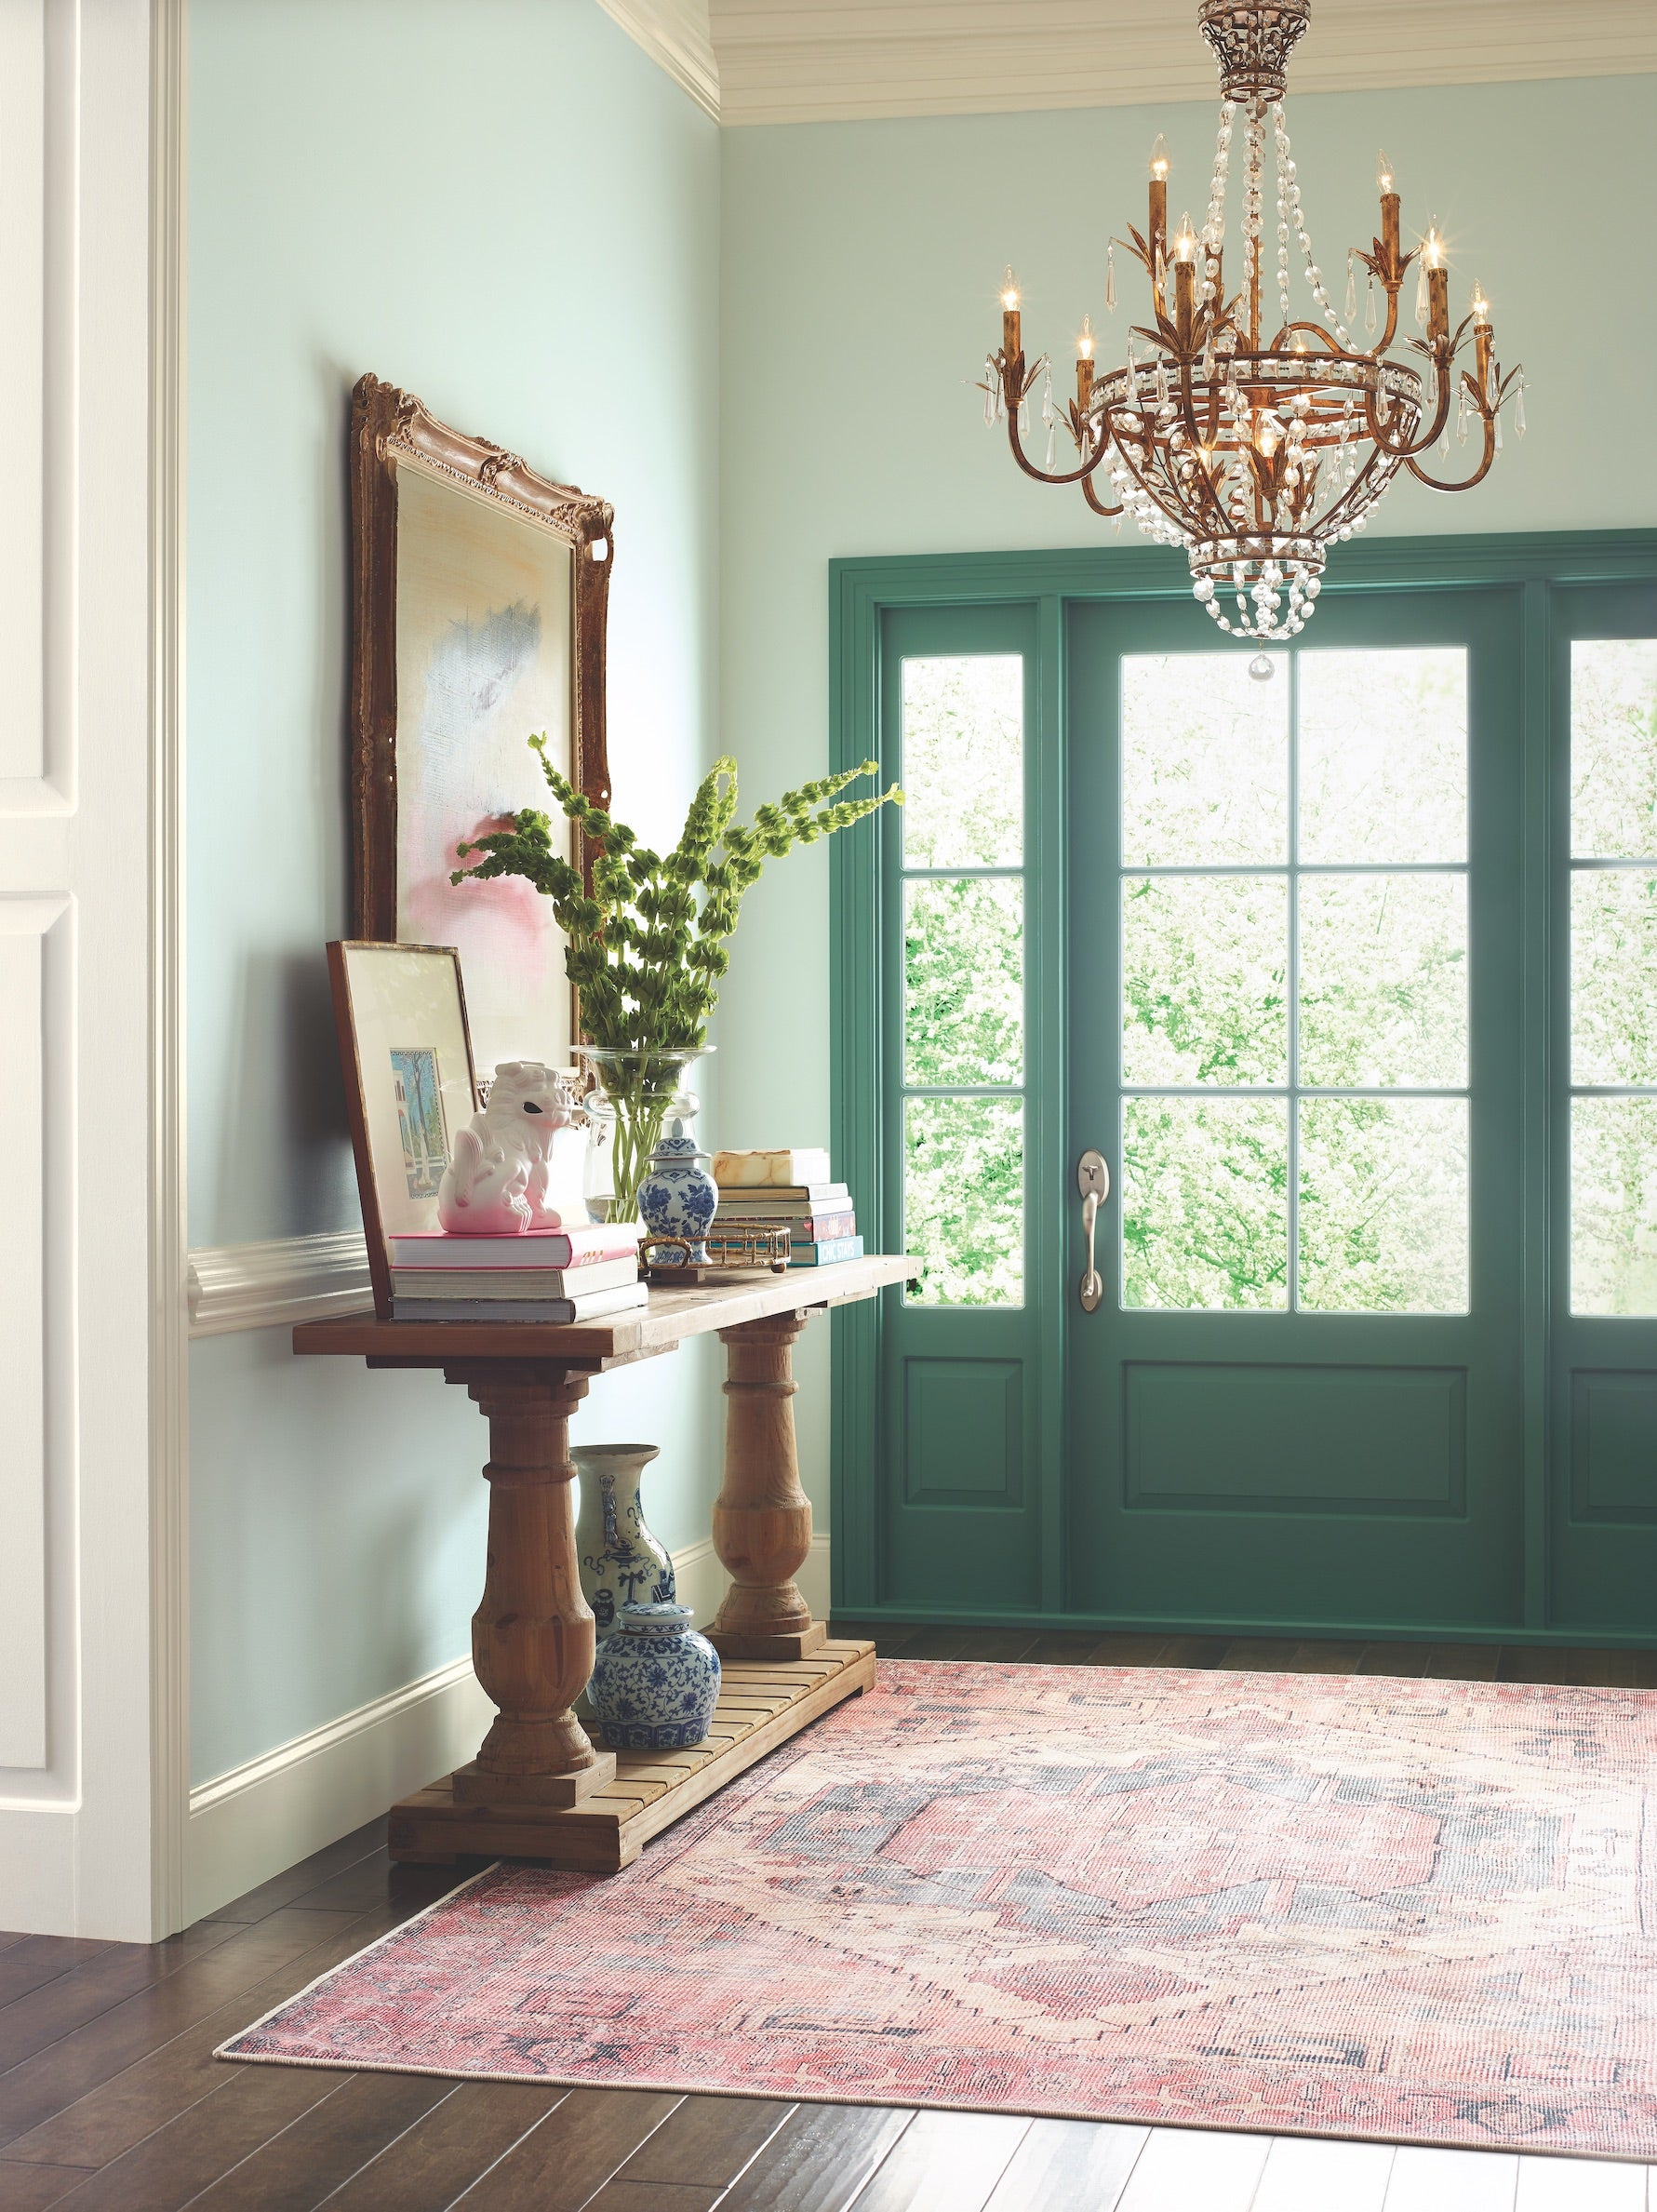 Sherwin Williams Just Released A Brand New Paint Collection